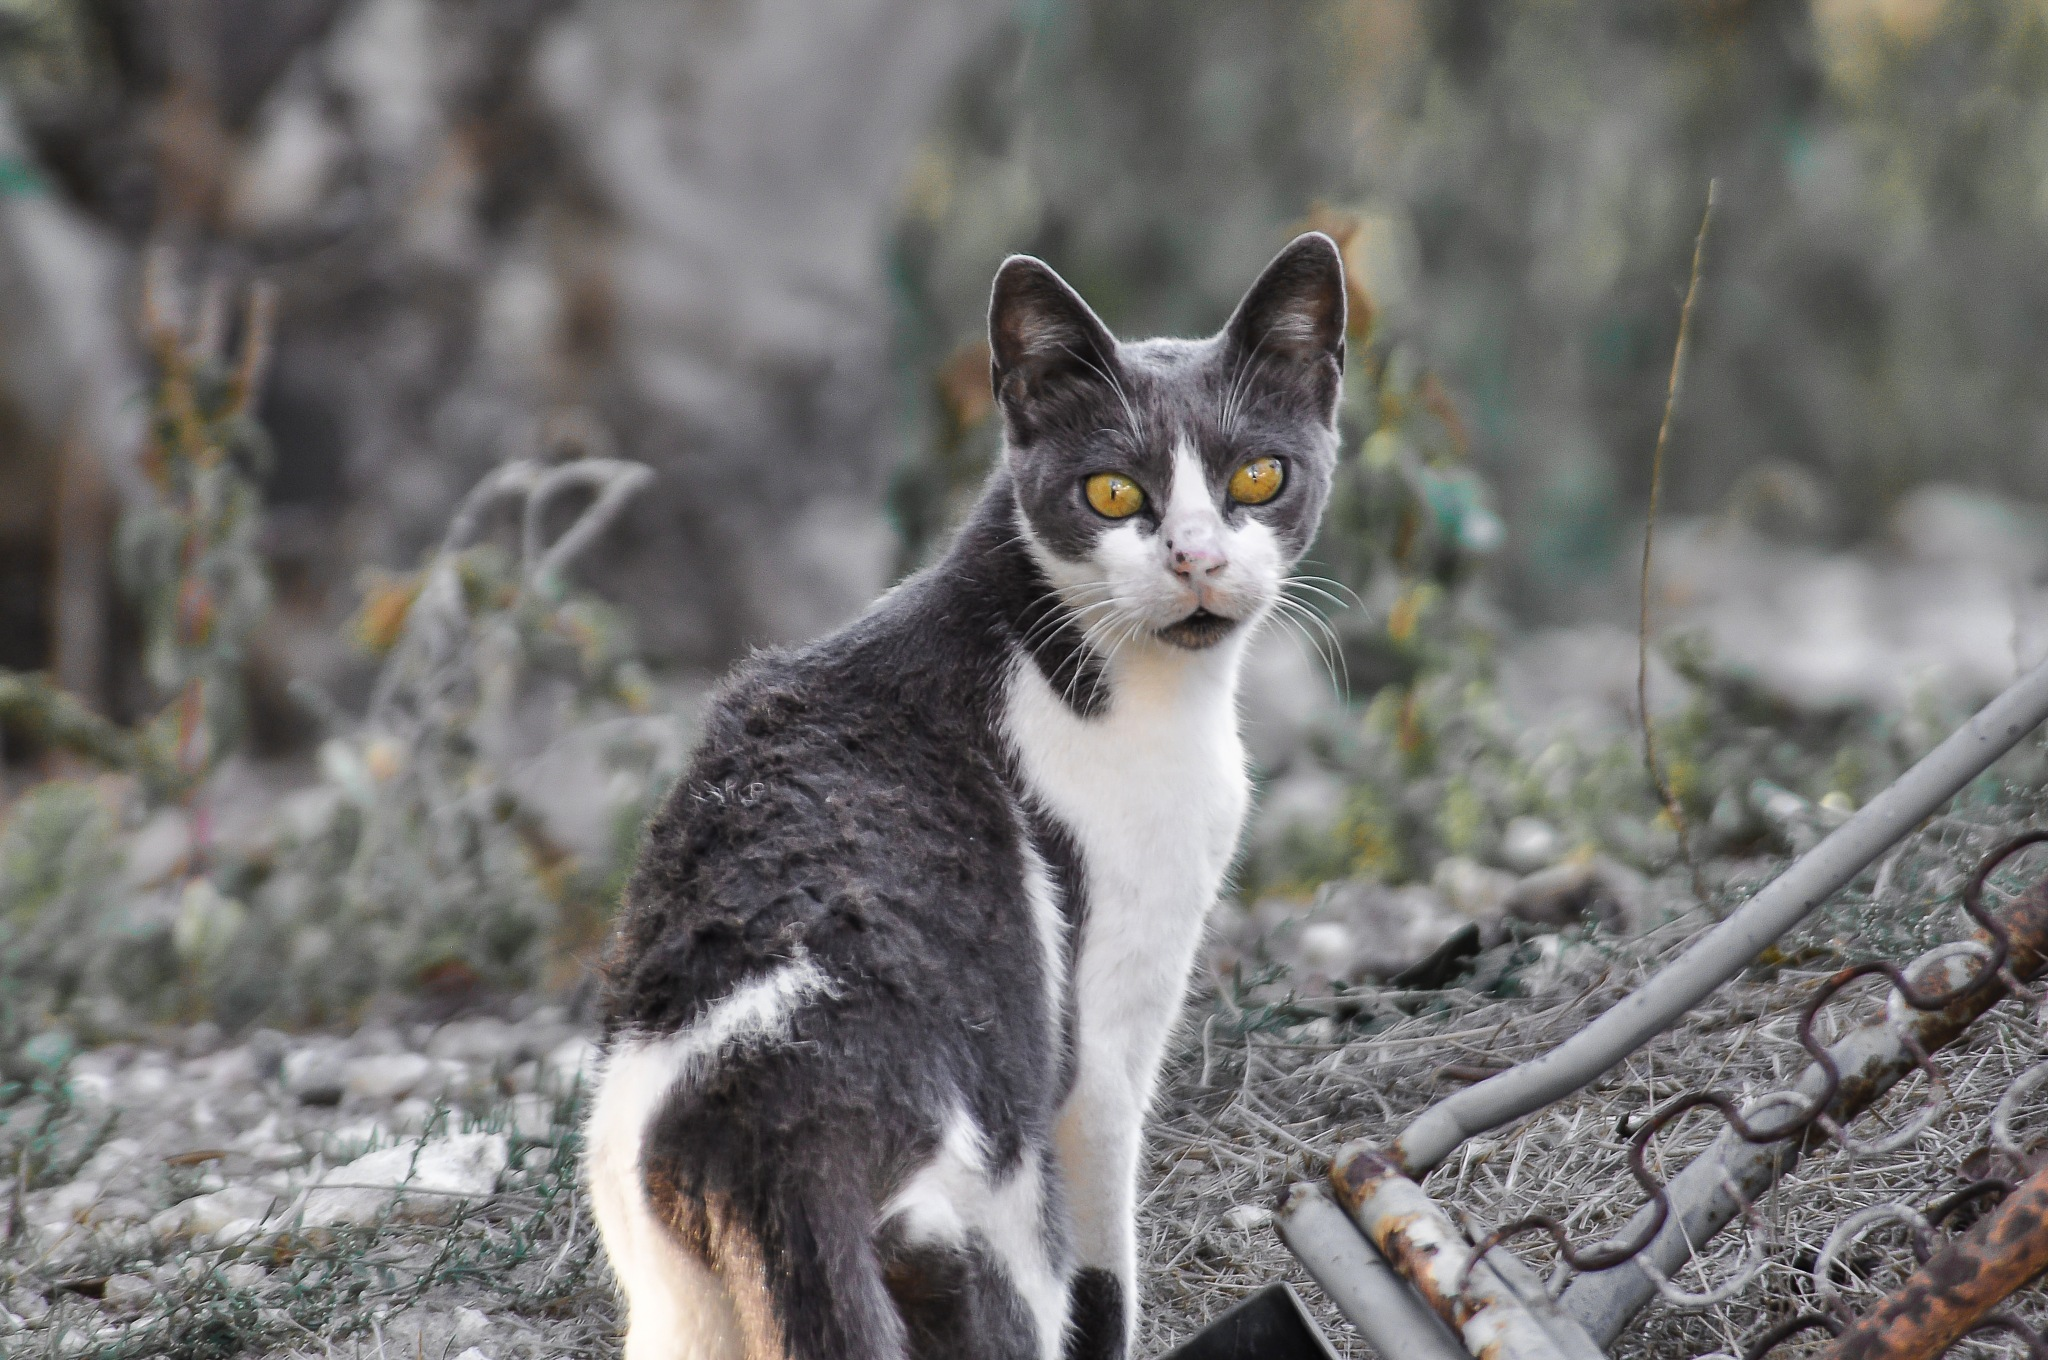 Another village cat by MacMcNamee